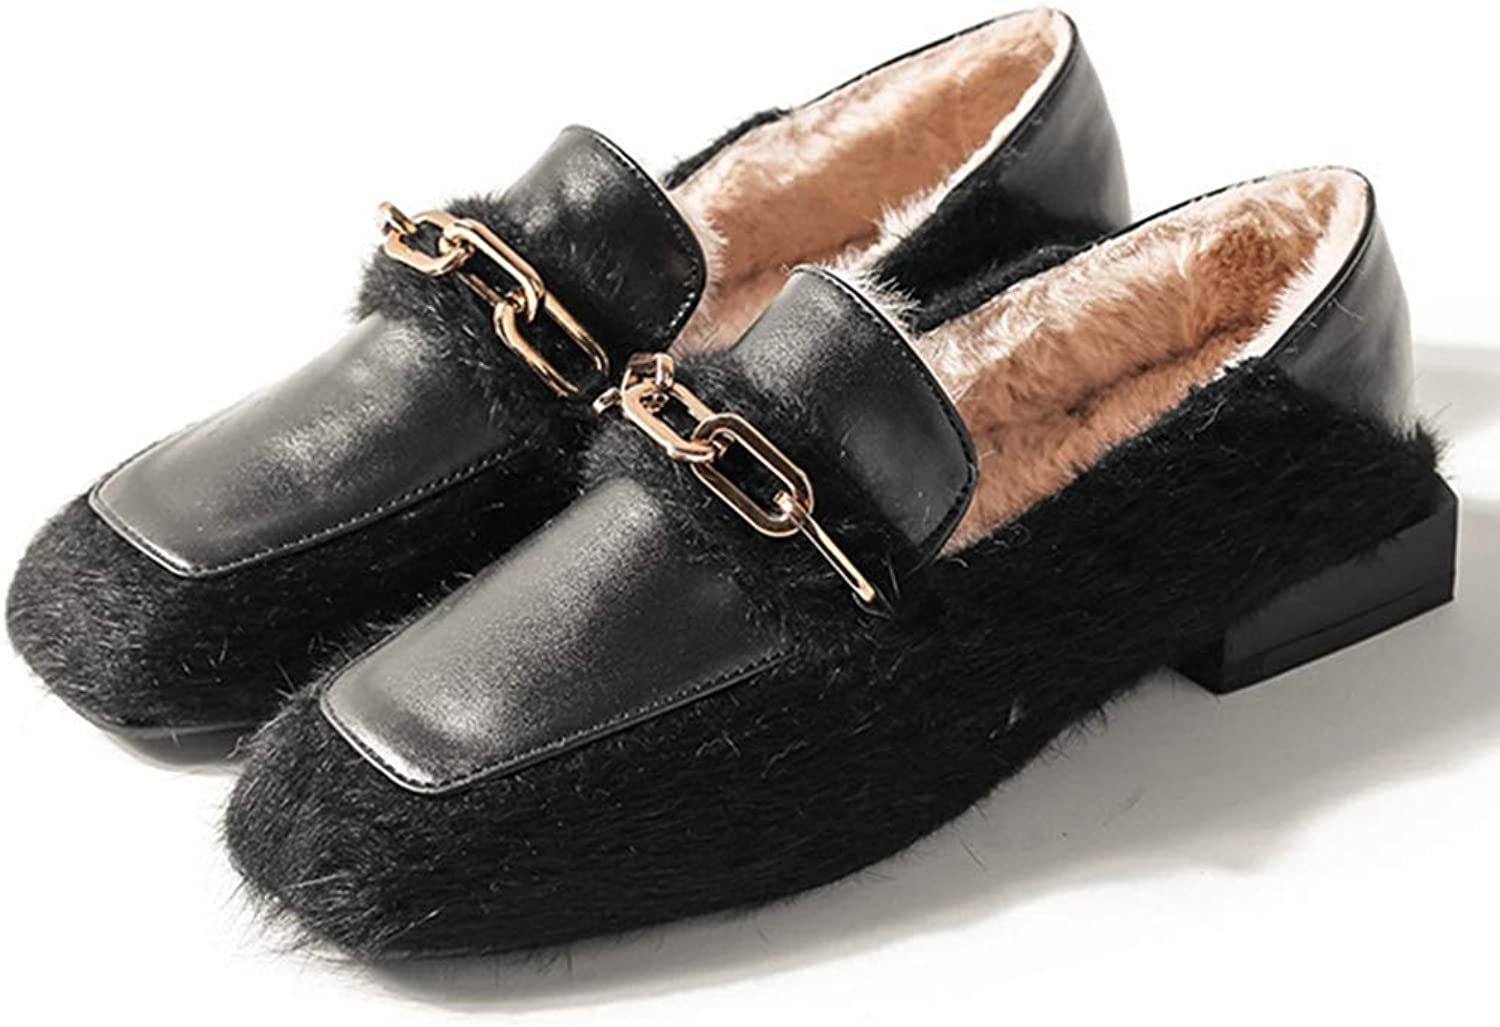 Beautiful - Fashion Women's Penny Loafers Slip On Metallic Chain Winter Warm Fur Flats Comfort Casual Driving Office Loafer shoes